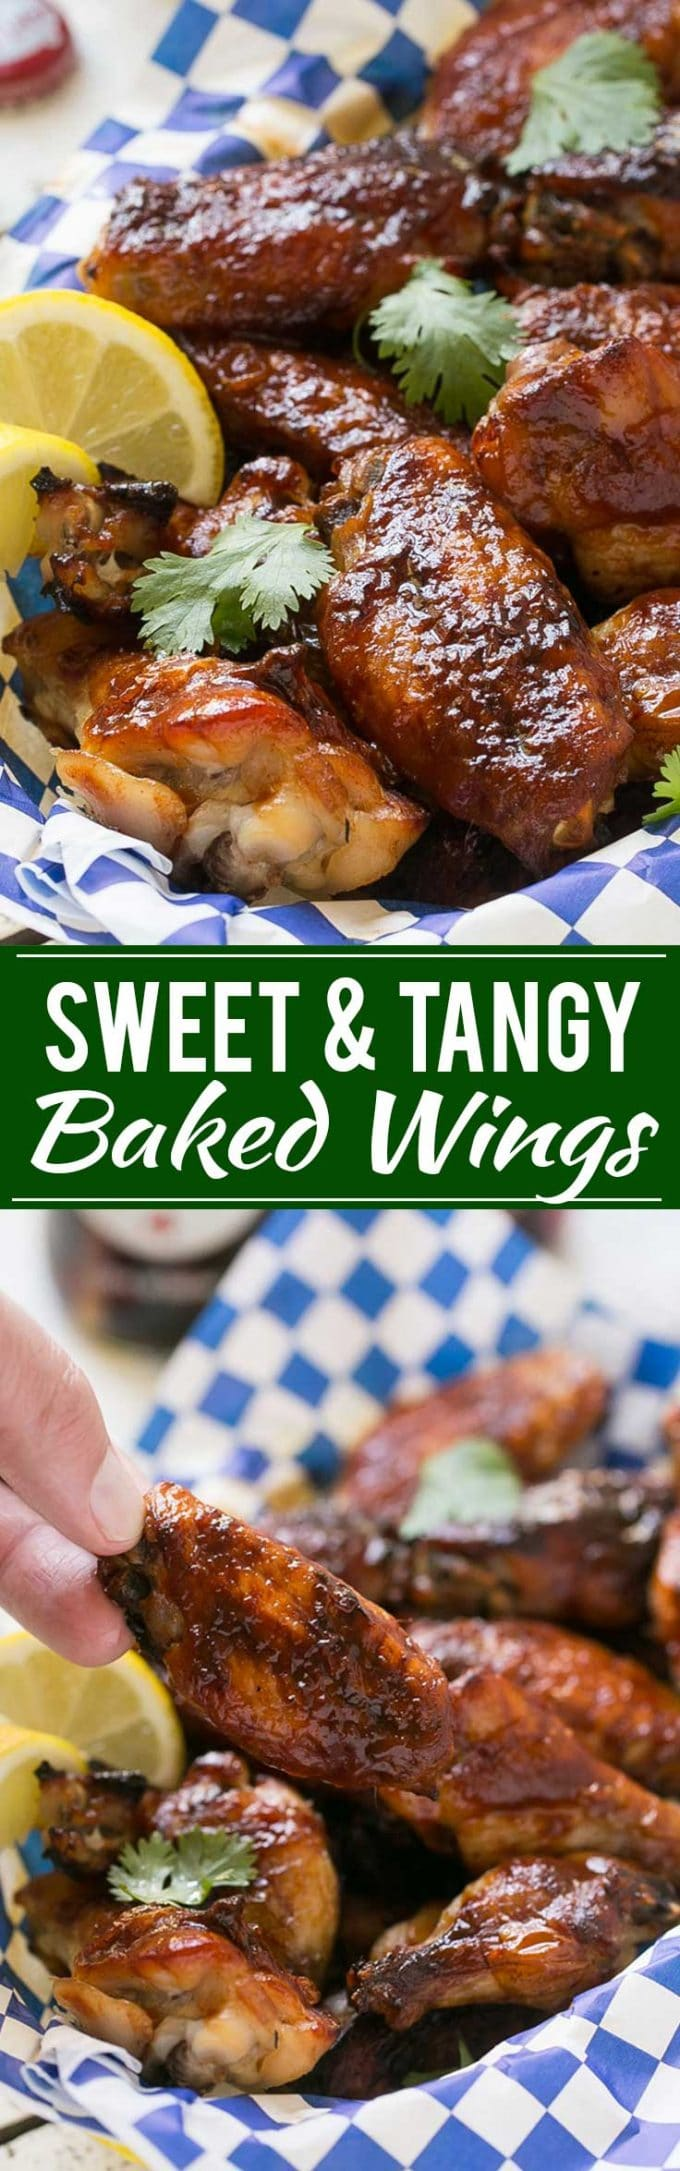 Sweet and Tangy Baked Wings Recipe | Dr. Pepper Chicken Wings | Sweet and Tangy Chicken Wings | Dr. Pepper Wings | Easy Sweet Chicken Wings | BBQ Dr. Pepper Chicken Wings